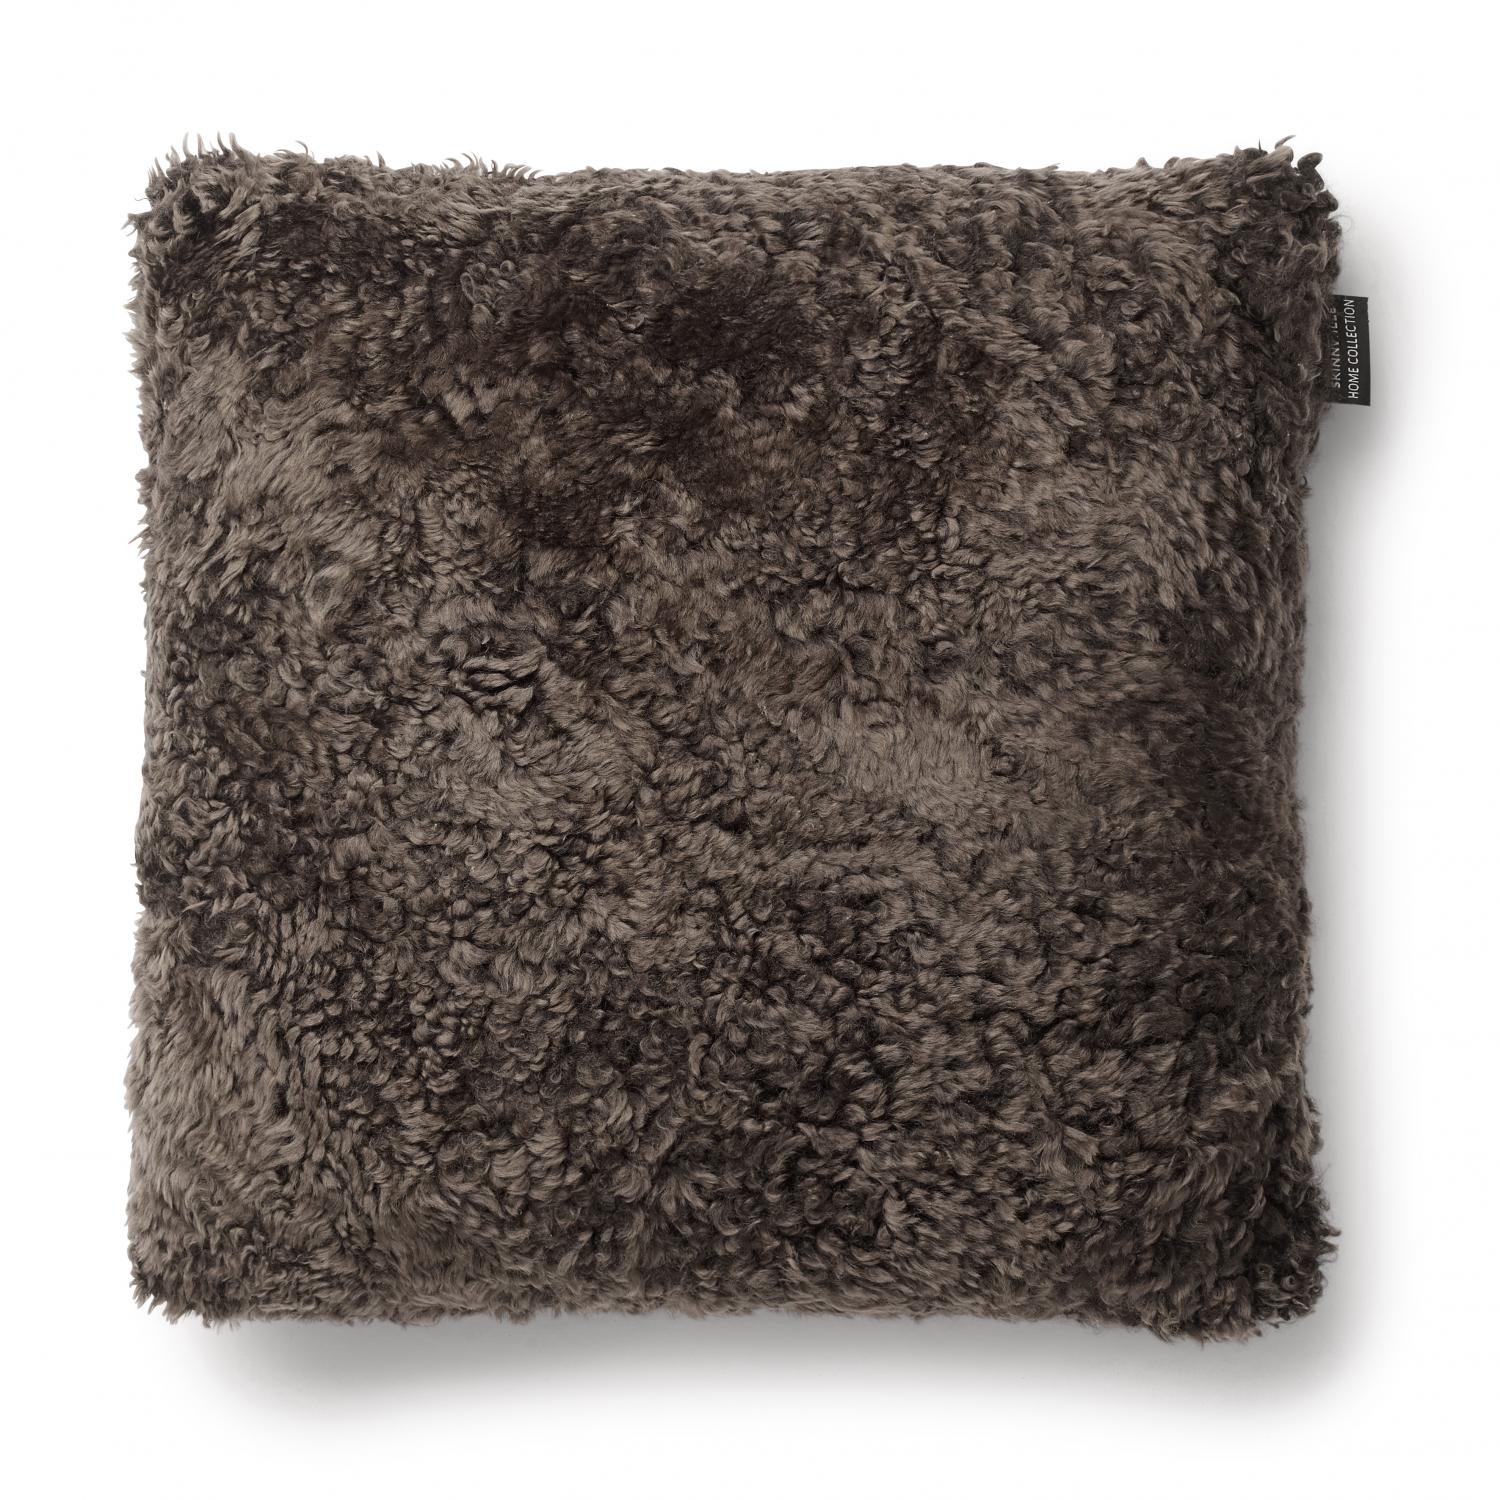 Curly Cushion cover 45x45 - Brown